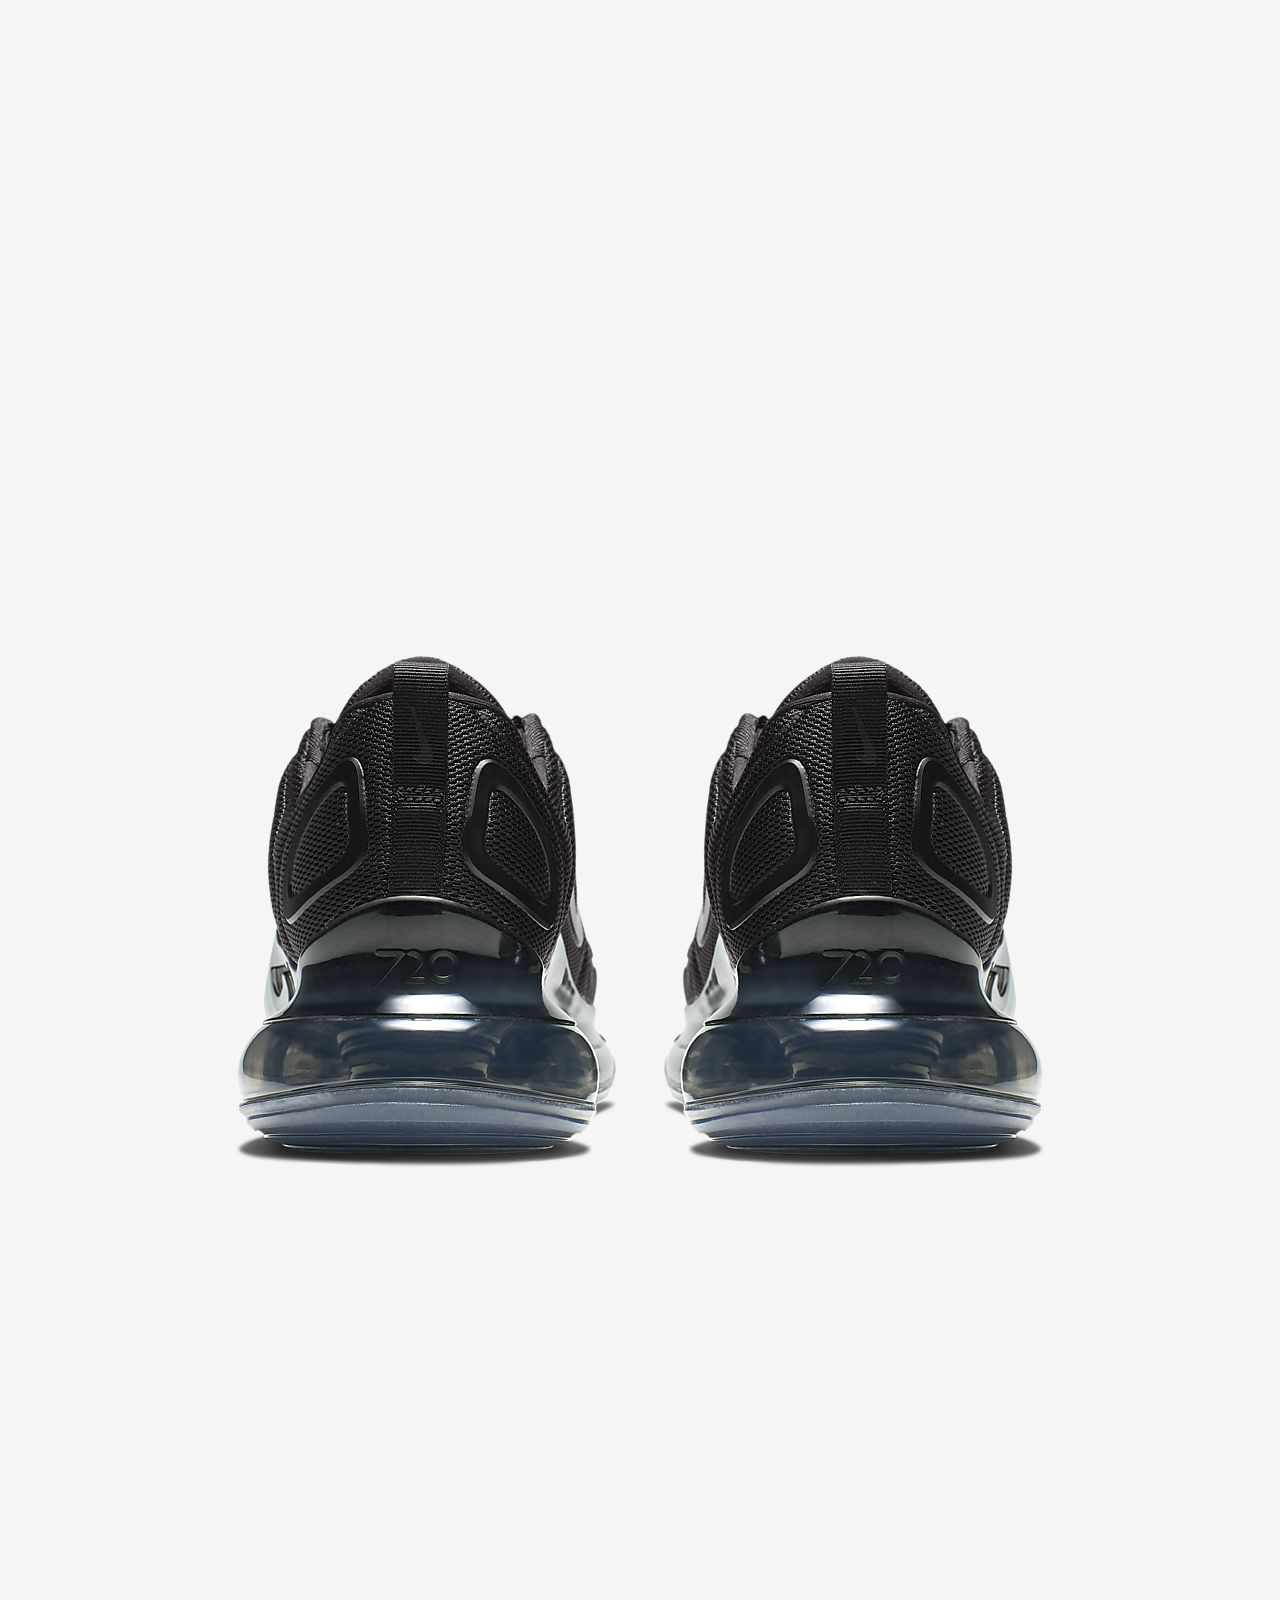 Nike Air Max 720 Be True Store List + Release Info